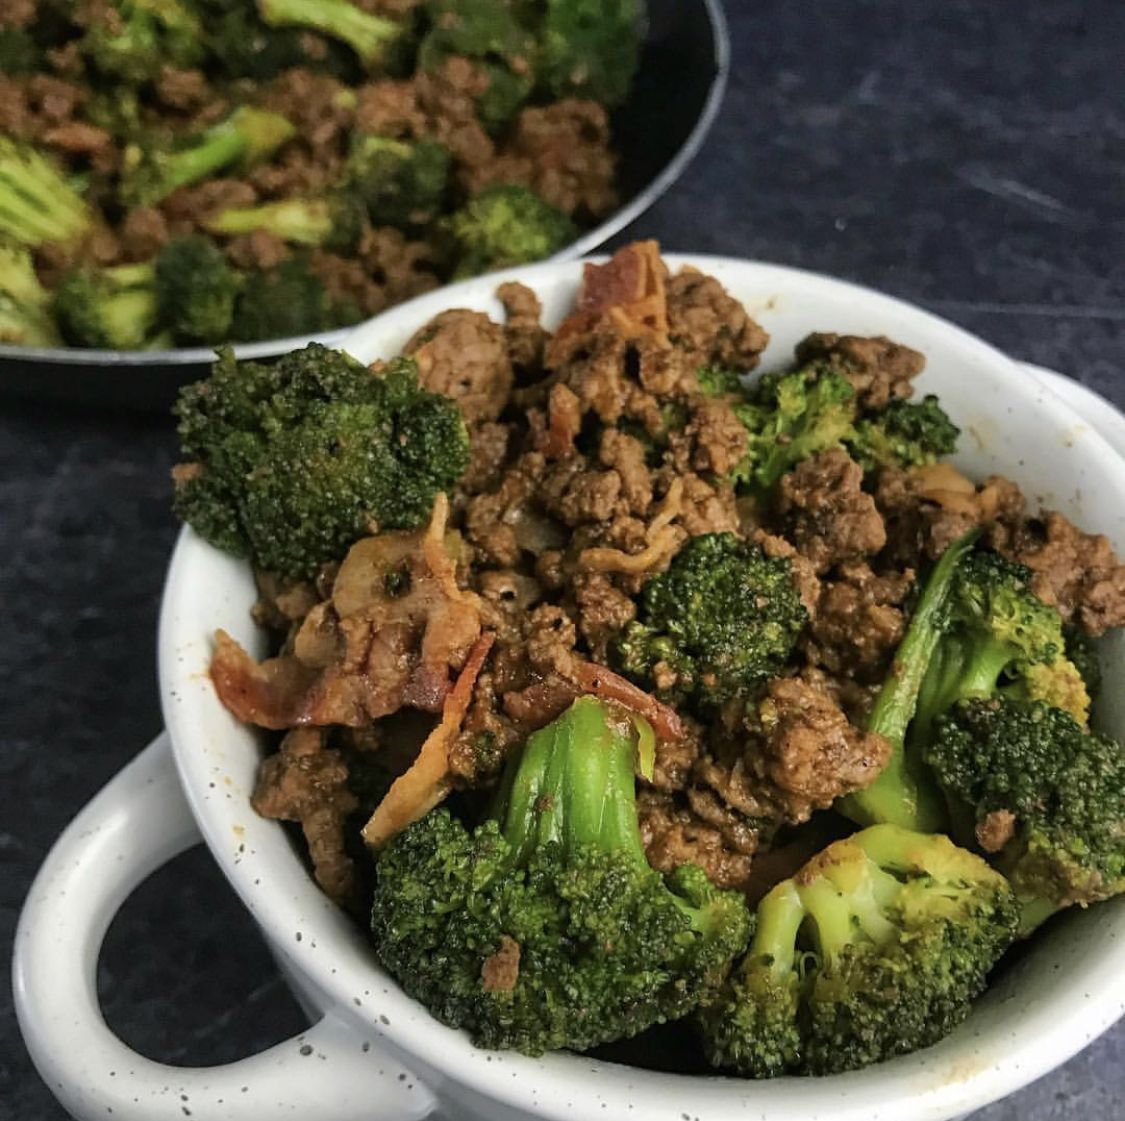 Sticky Sweet Ground Beef And Broccoli Or Make With Slaw Broccoli Beef Ground Beef And Broccoli Broccoli Recipes